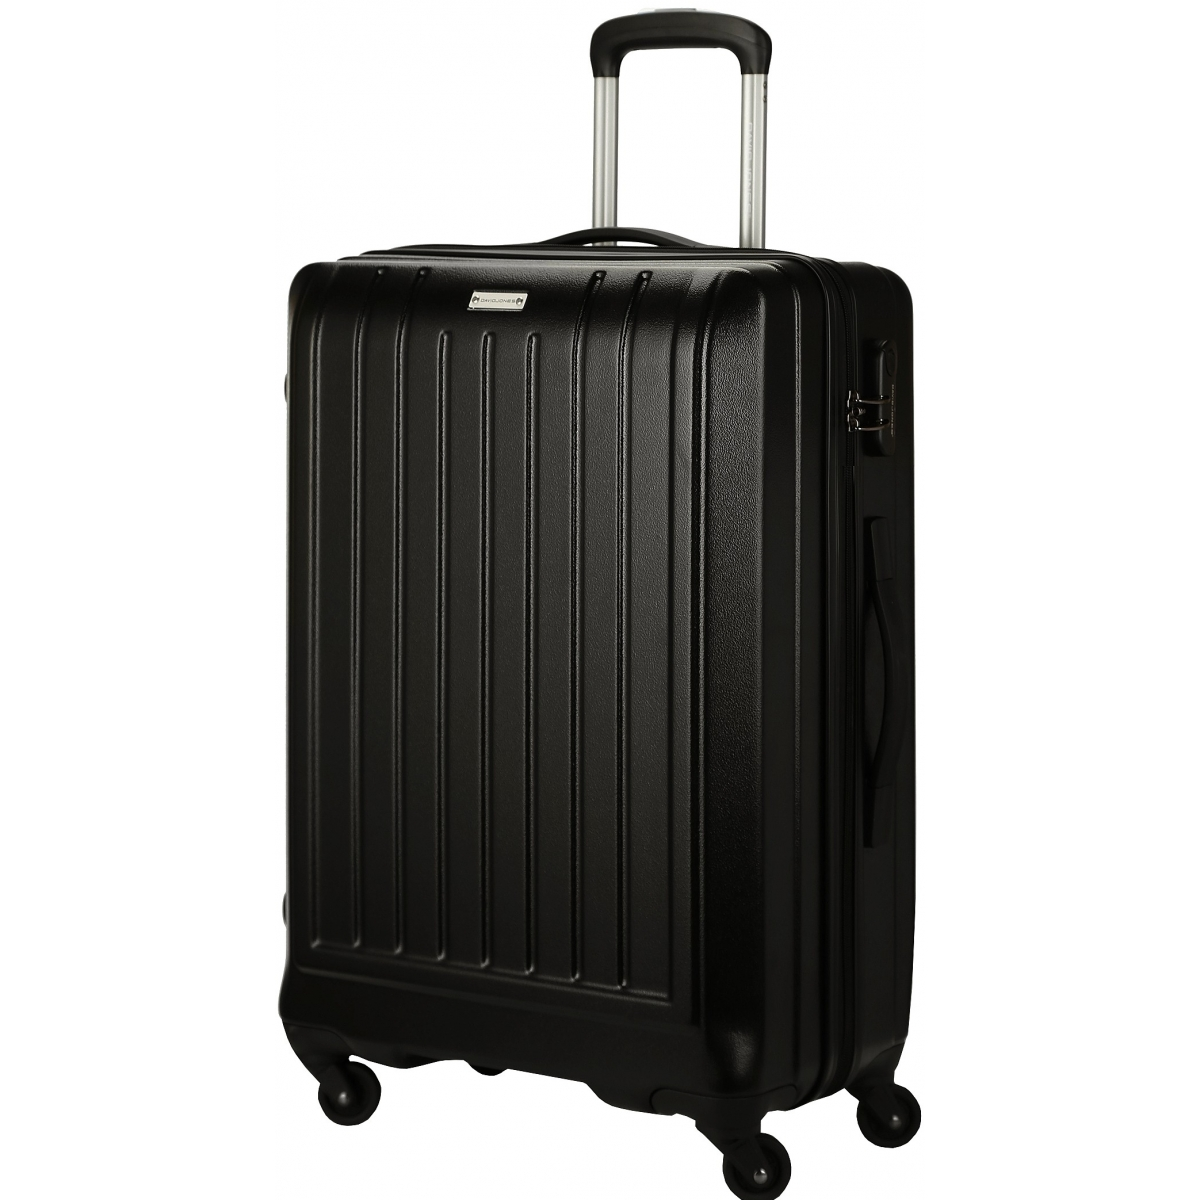 valise rigide david jones taille g 76cm ba10151g couleur principale black valise pas. Black Bedroom Furniture Sets. Home Design Ideas